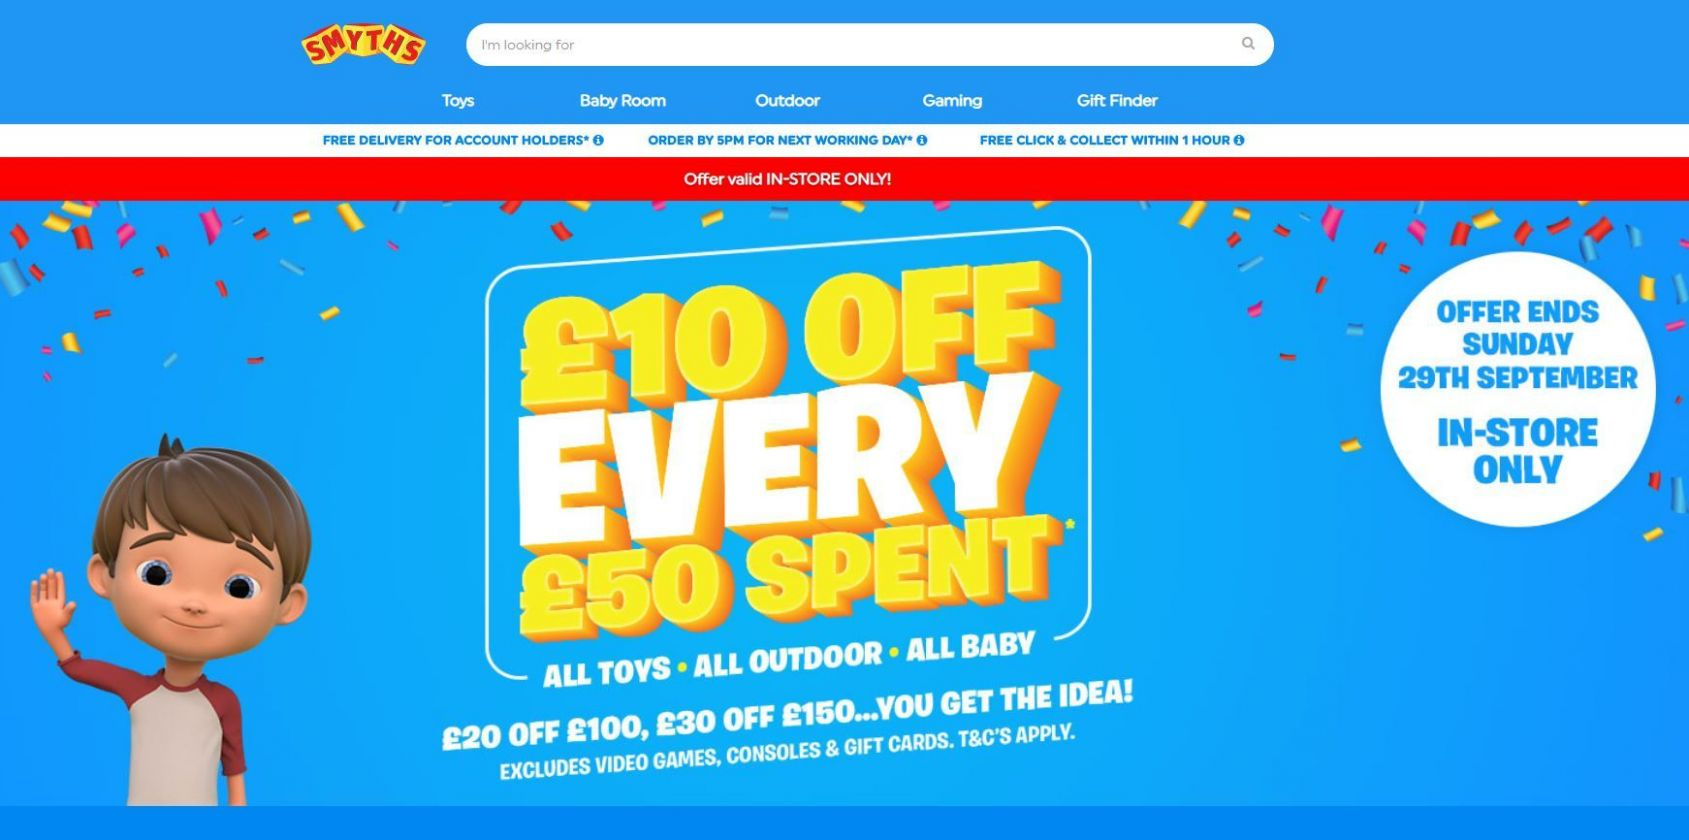 Smyths Toys is giving shoppers £8 off but you have to spend £8 ..